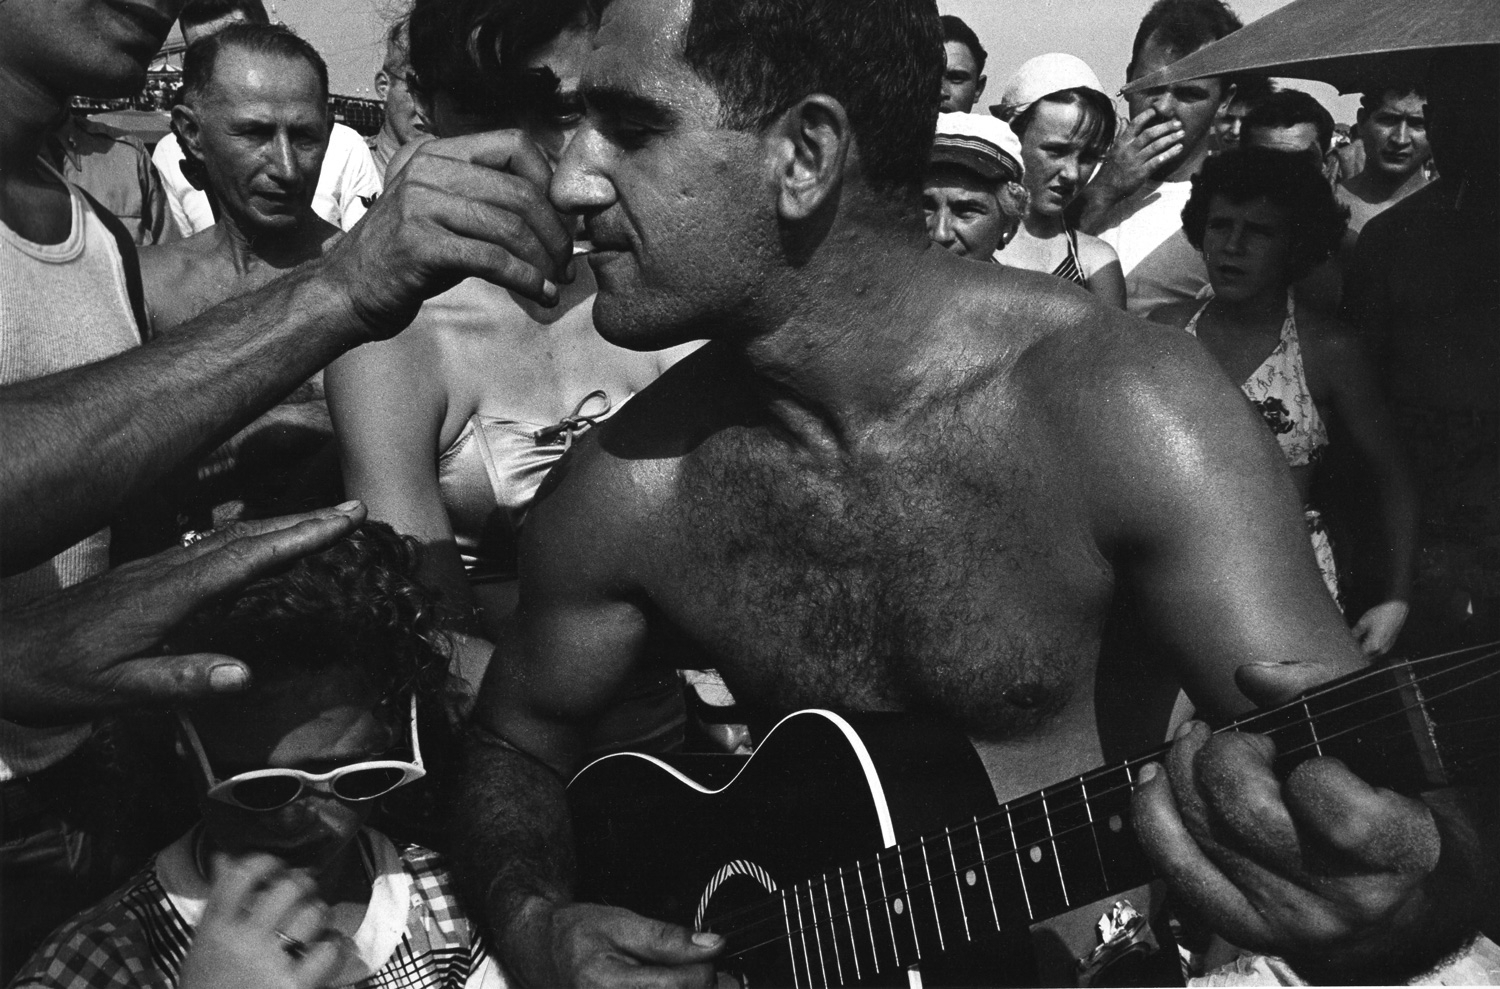 Guitar Player and Cigarette, Coney Island